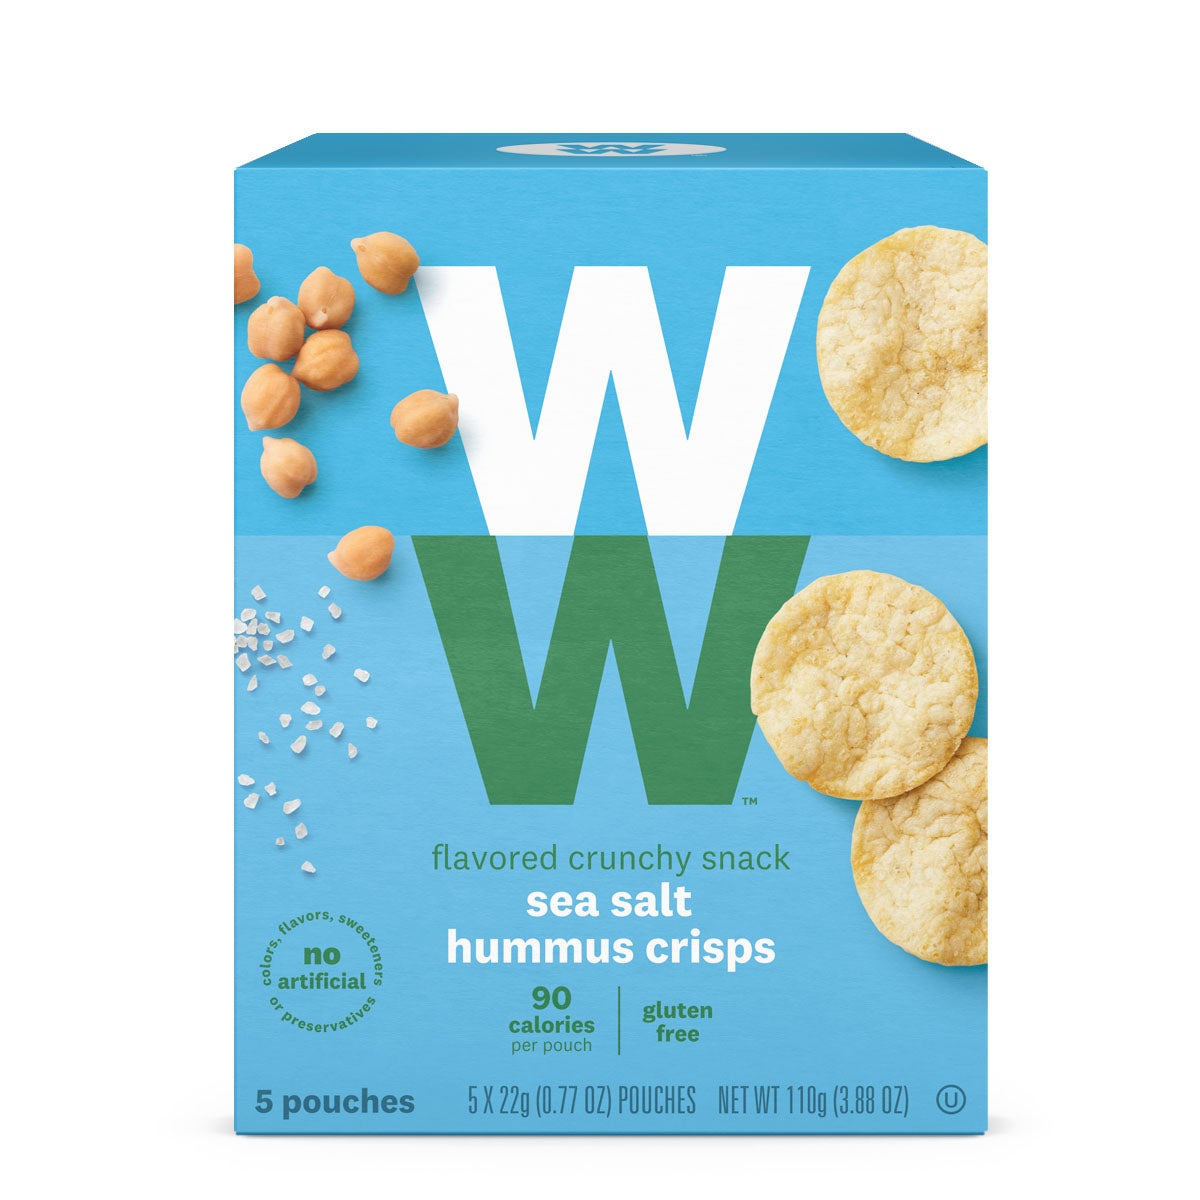 Sea Salt Hummus Crisps